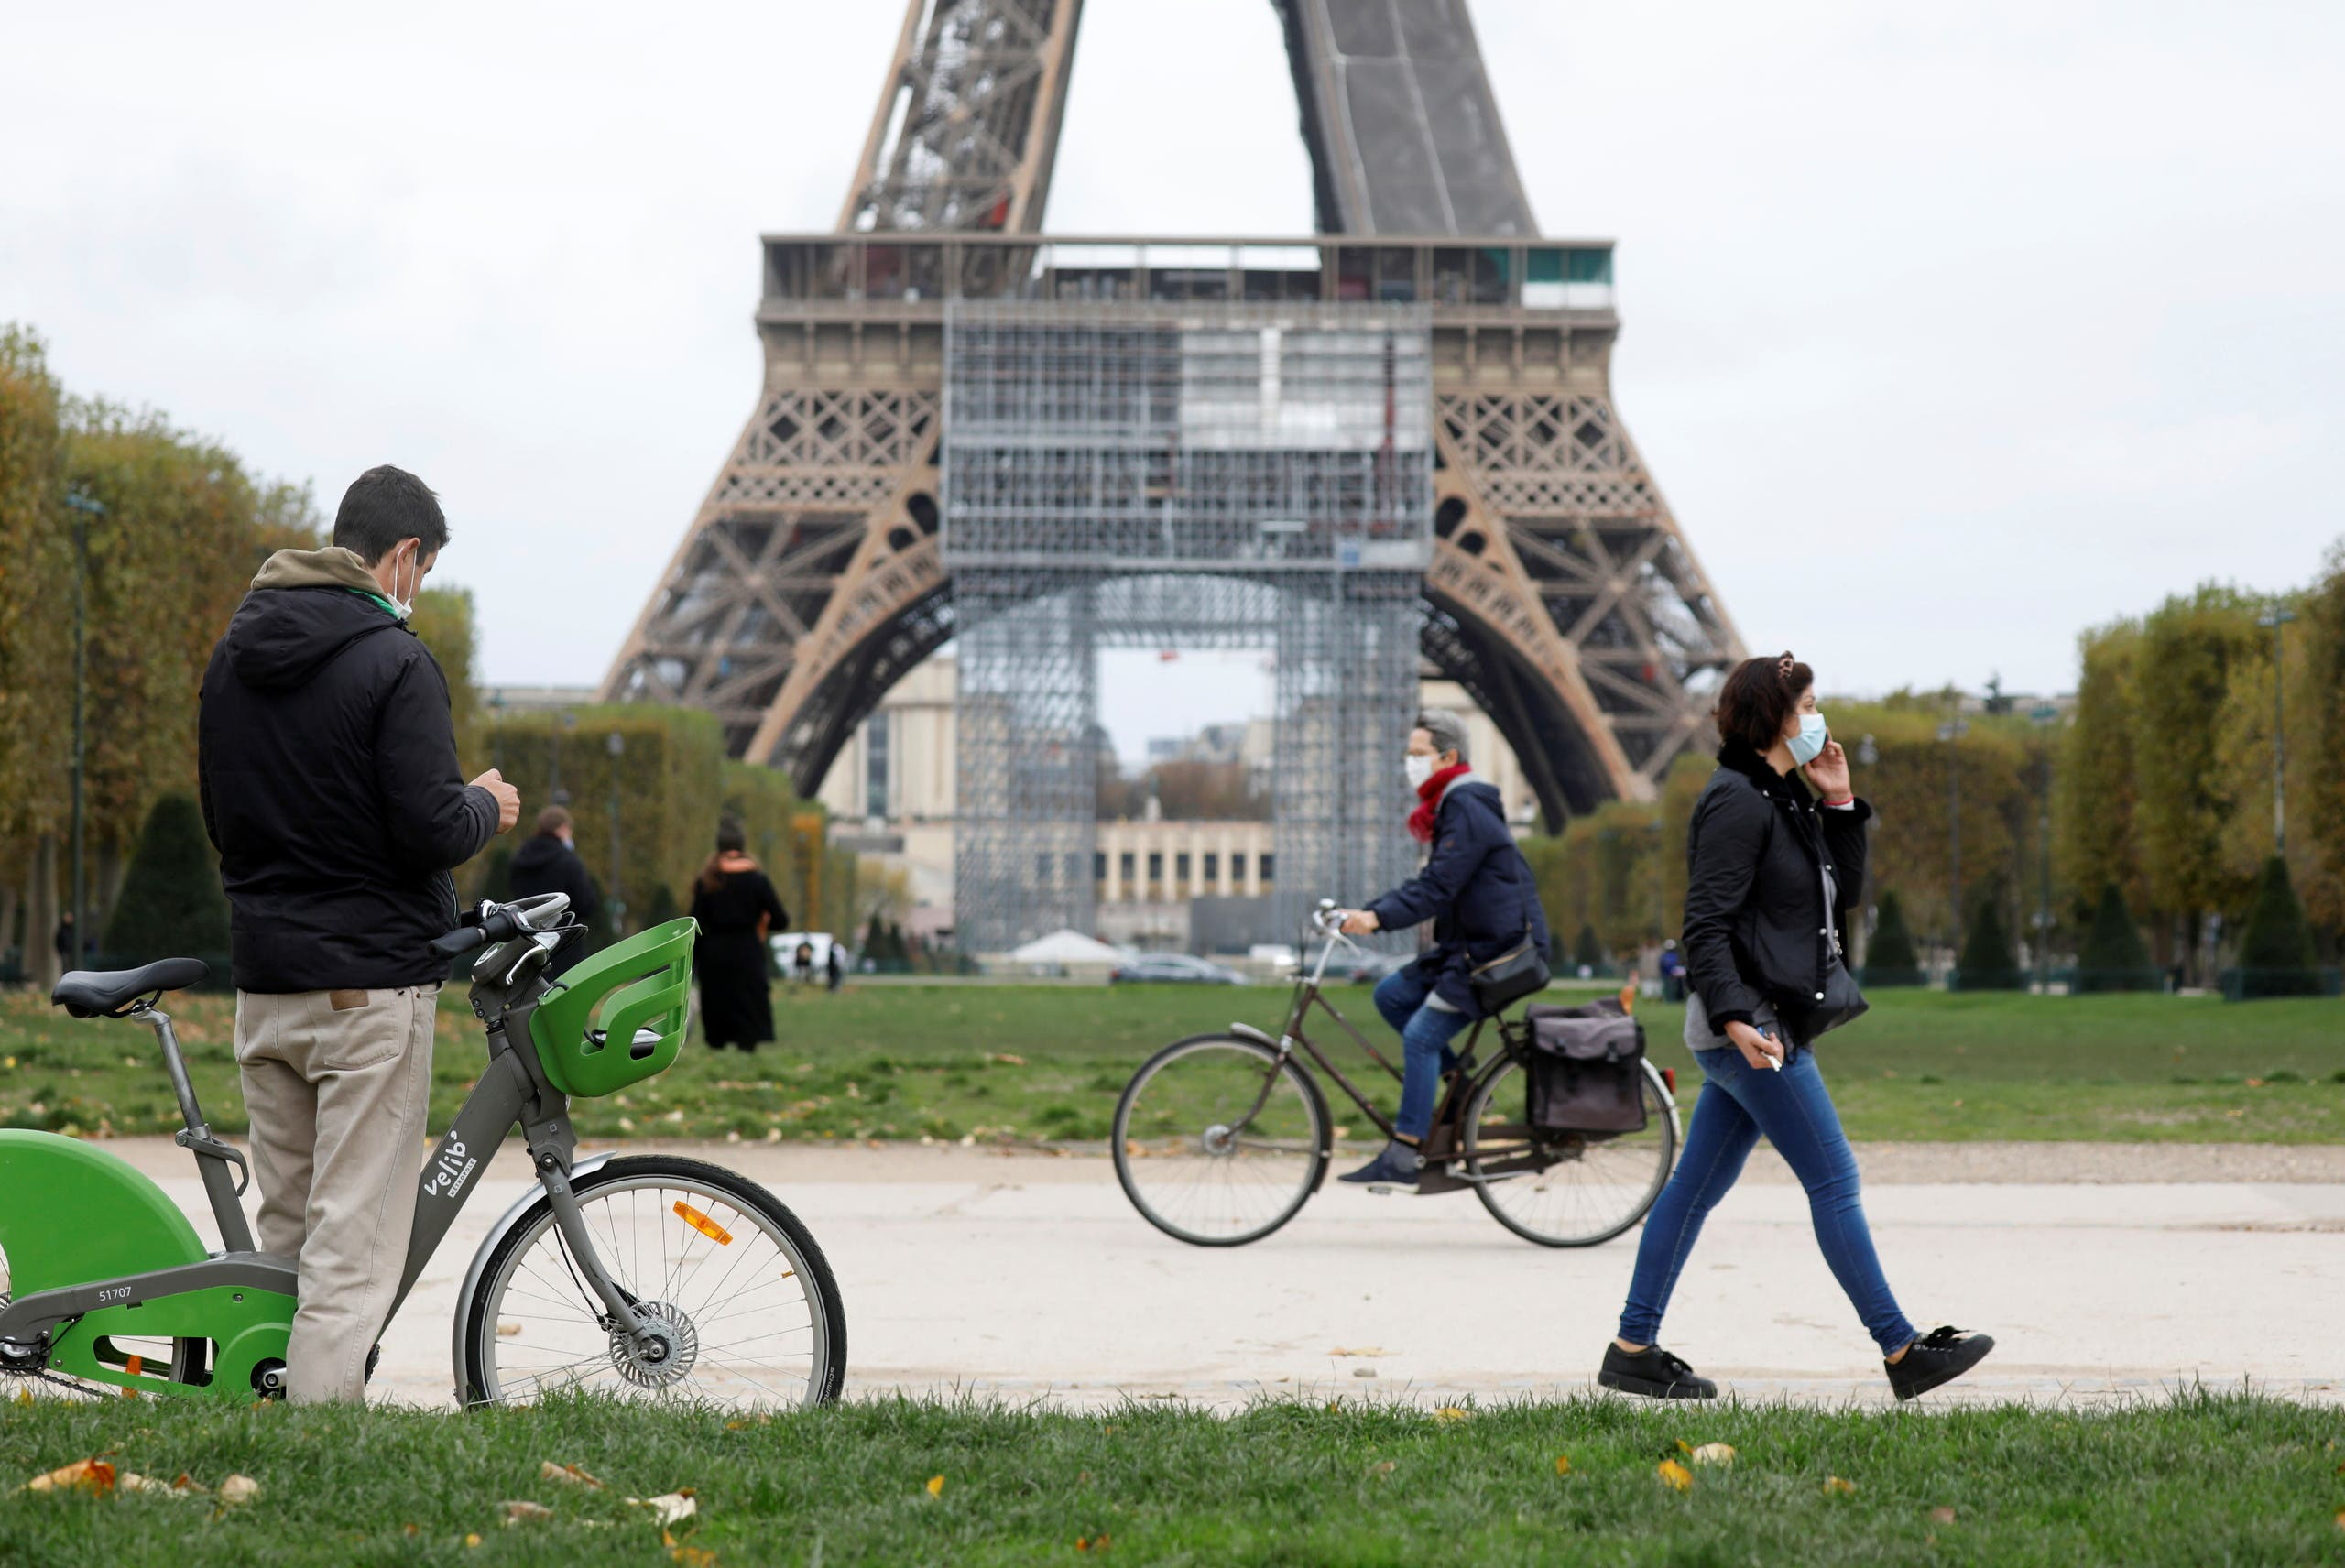 People pass by the Eiffel Tower before the national lockdown introduced as part of the new COVID-19 measures to fight a second wave of the coronavirus disease, in Paris, France, October 29, 2020. (File photo: Reuters)